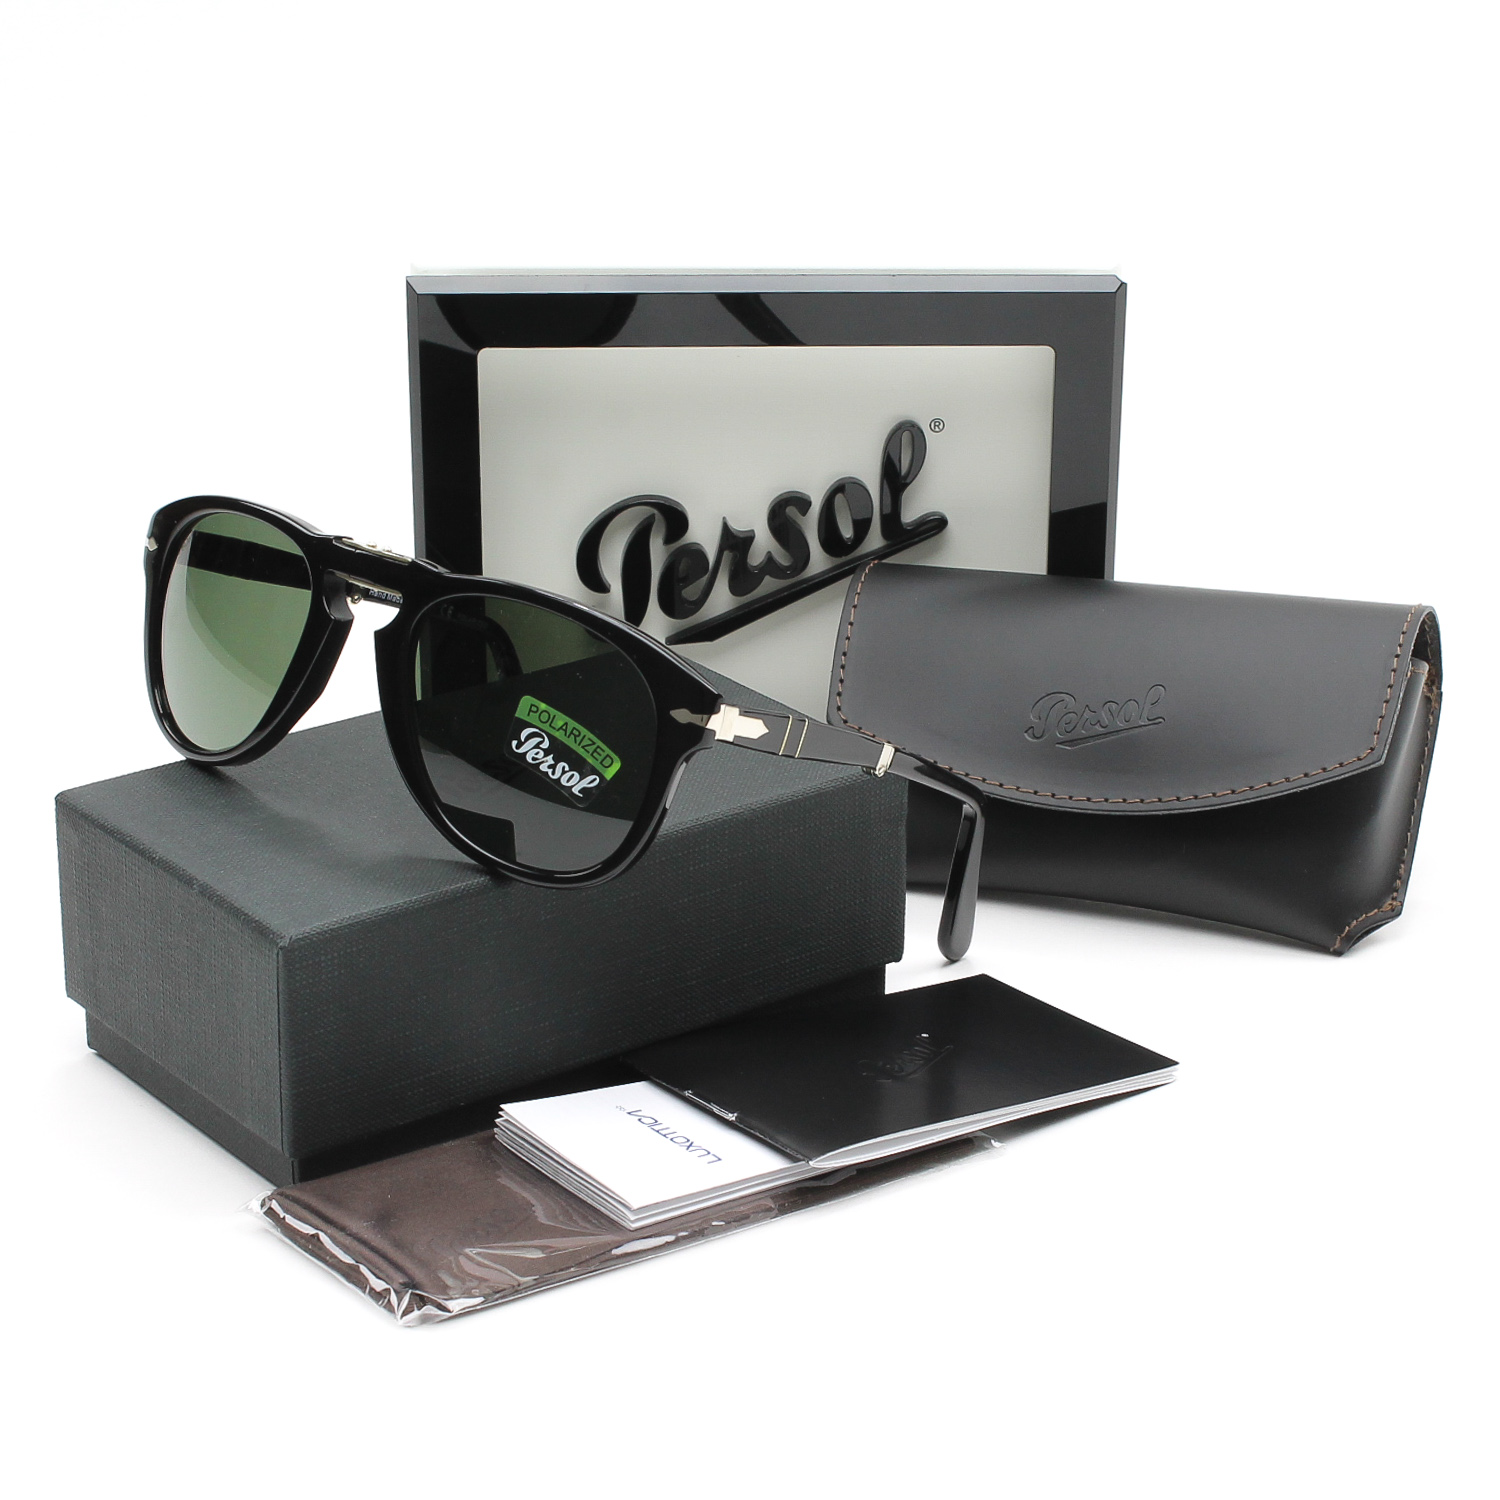 8f368ab308e Details about Persol 714 Folding Sunglasses 95 58 Black   Grey Green  Polarized PO0714 52 mm